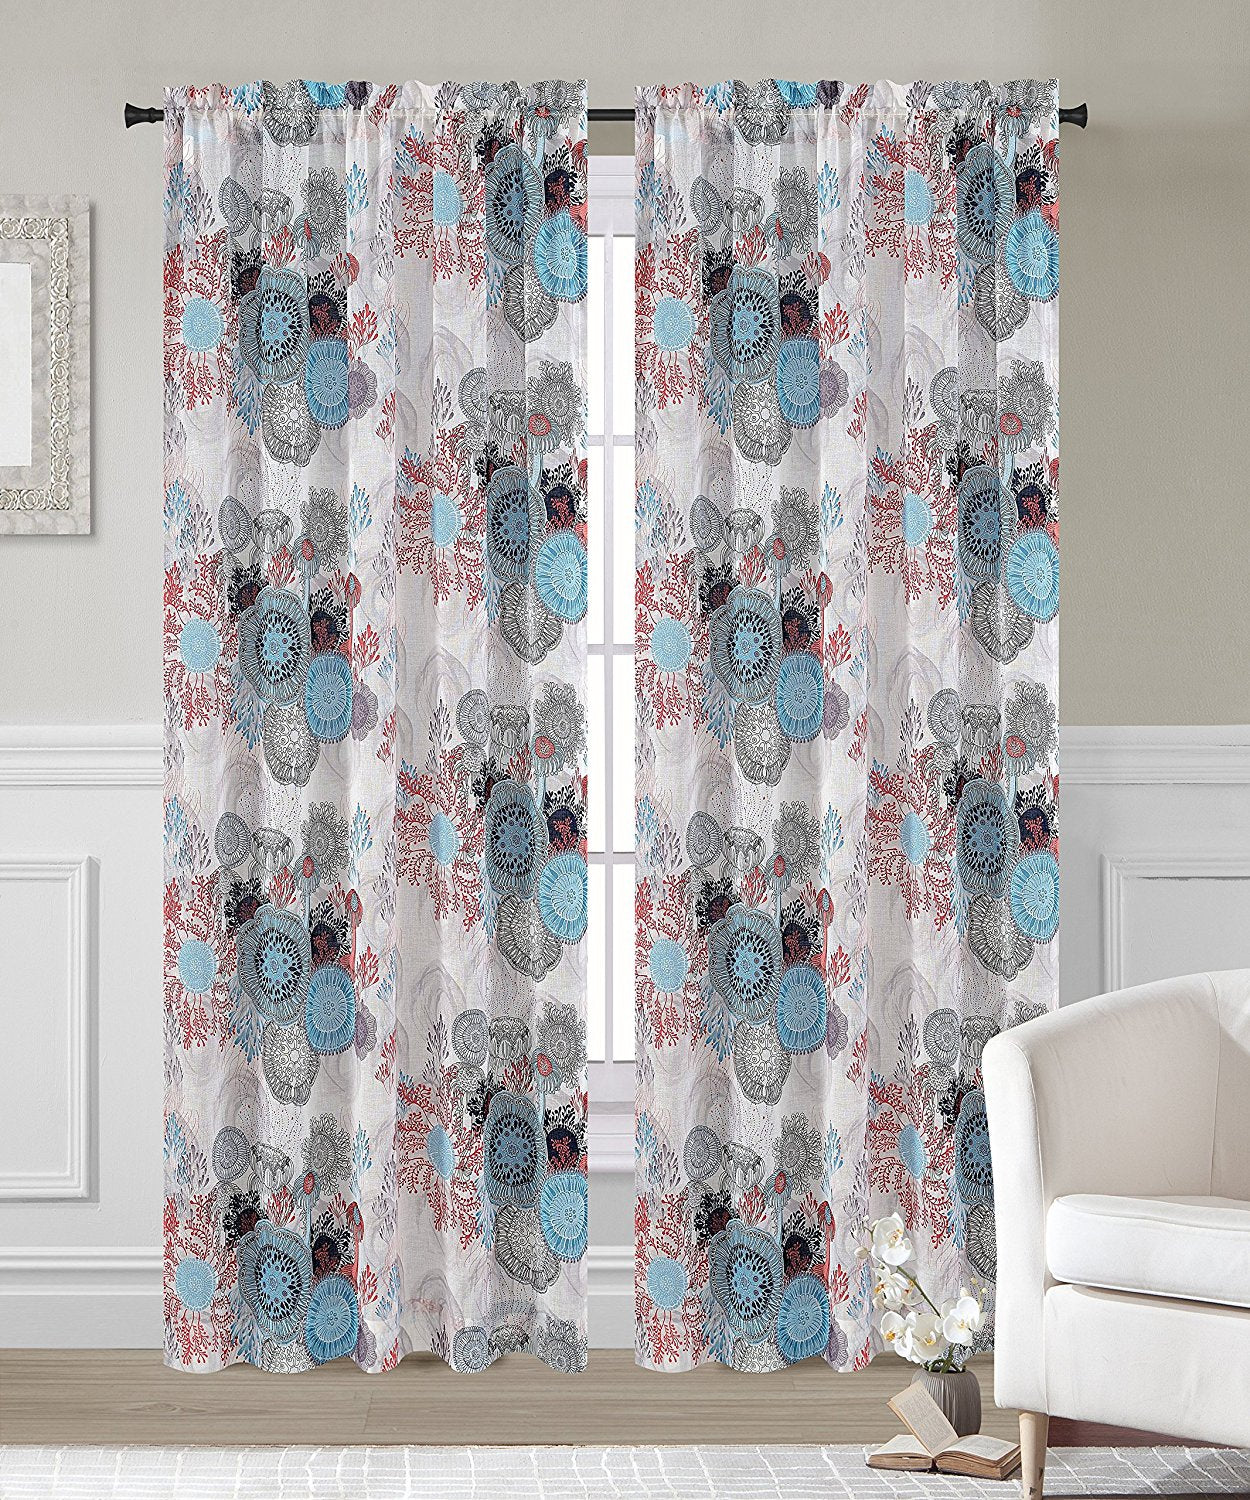 Greenwich Set of 2 Faux Linen Sheer Curtain Panels